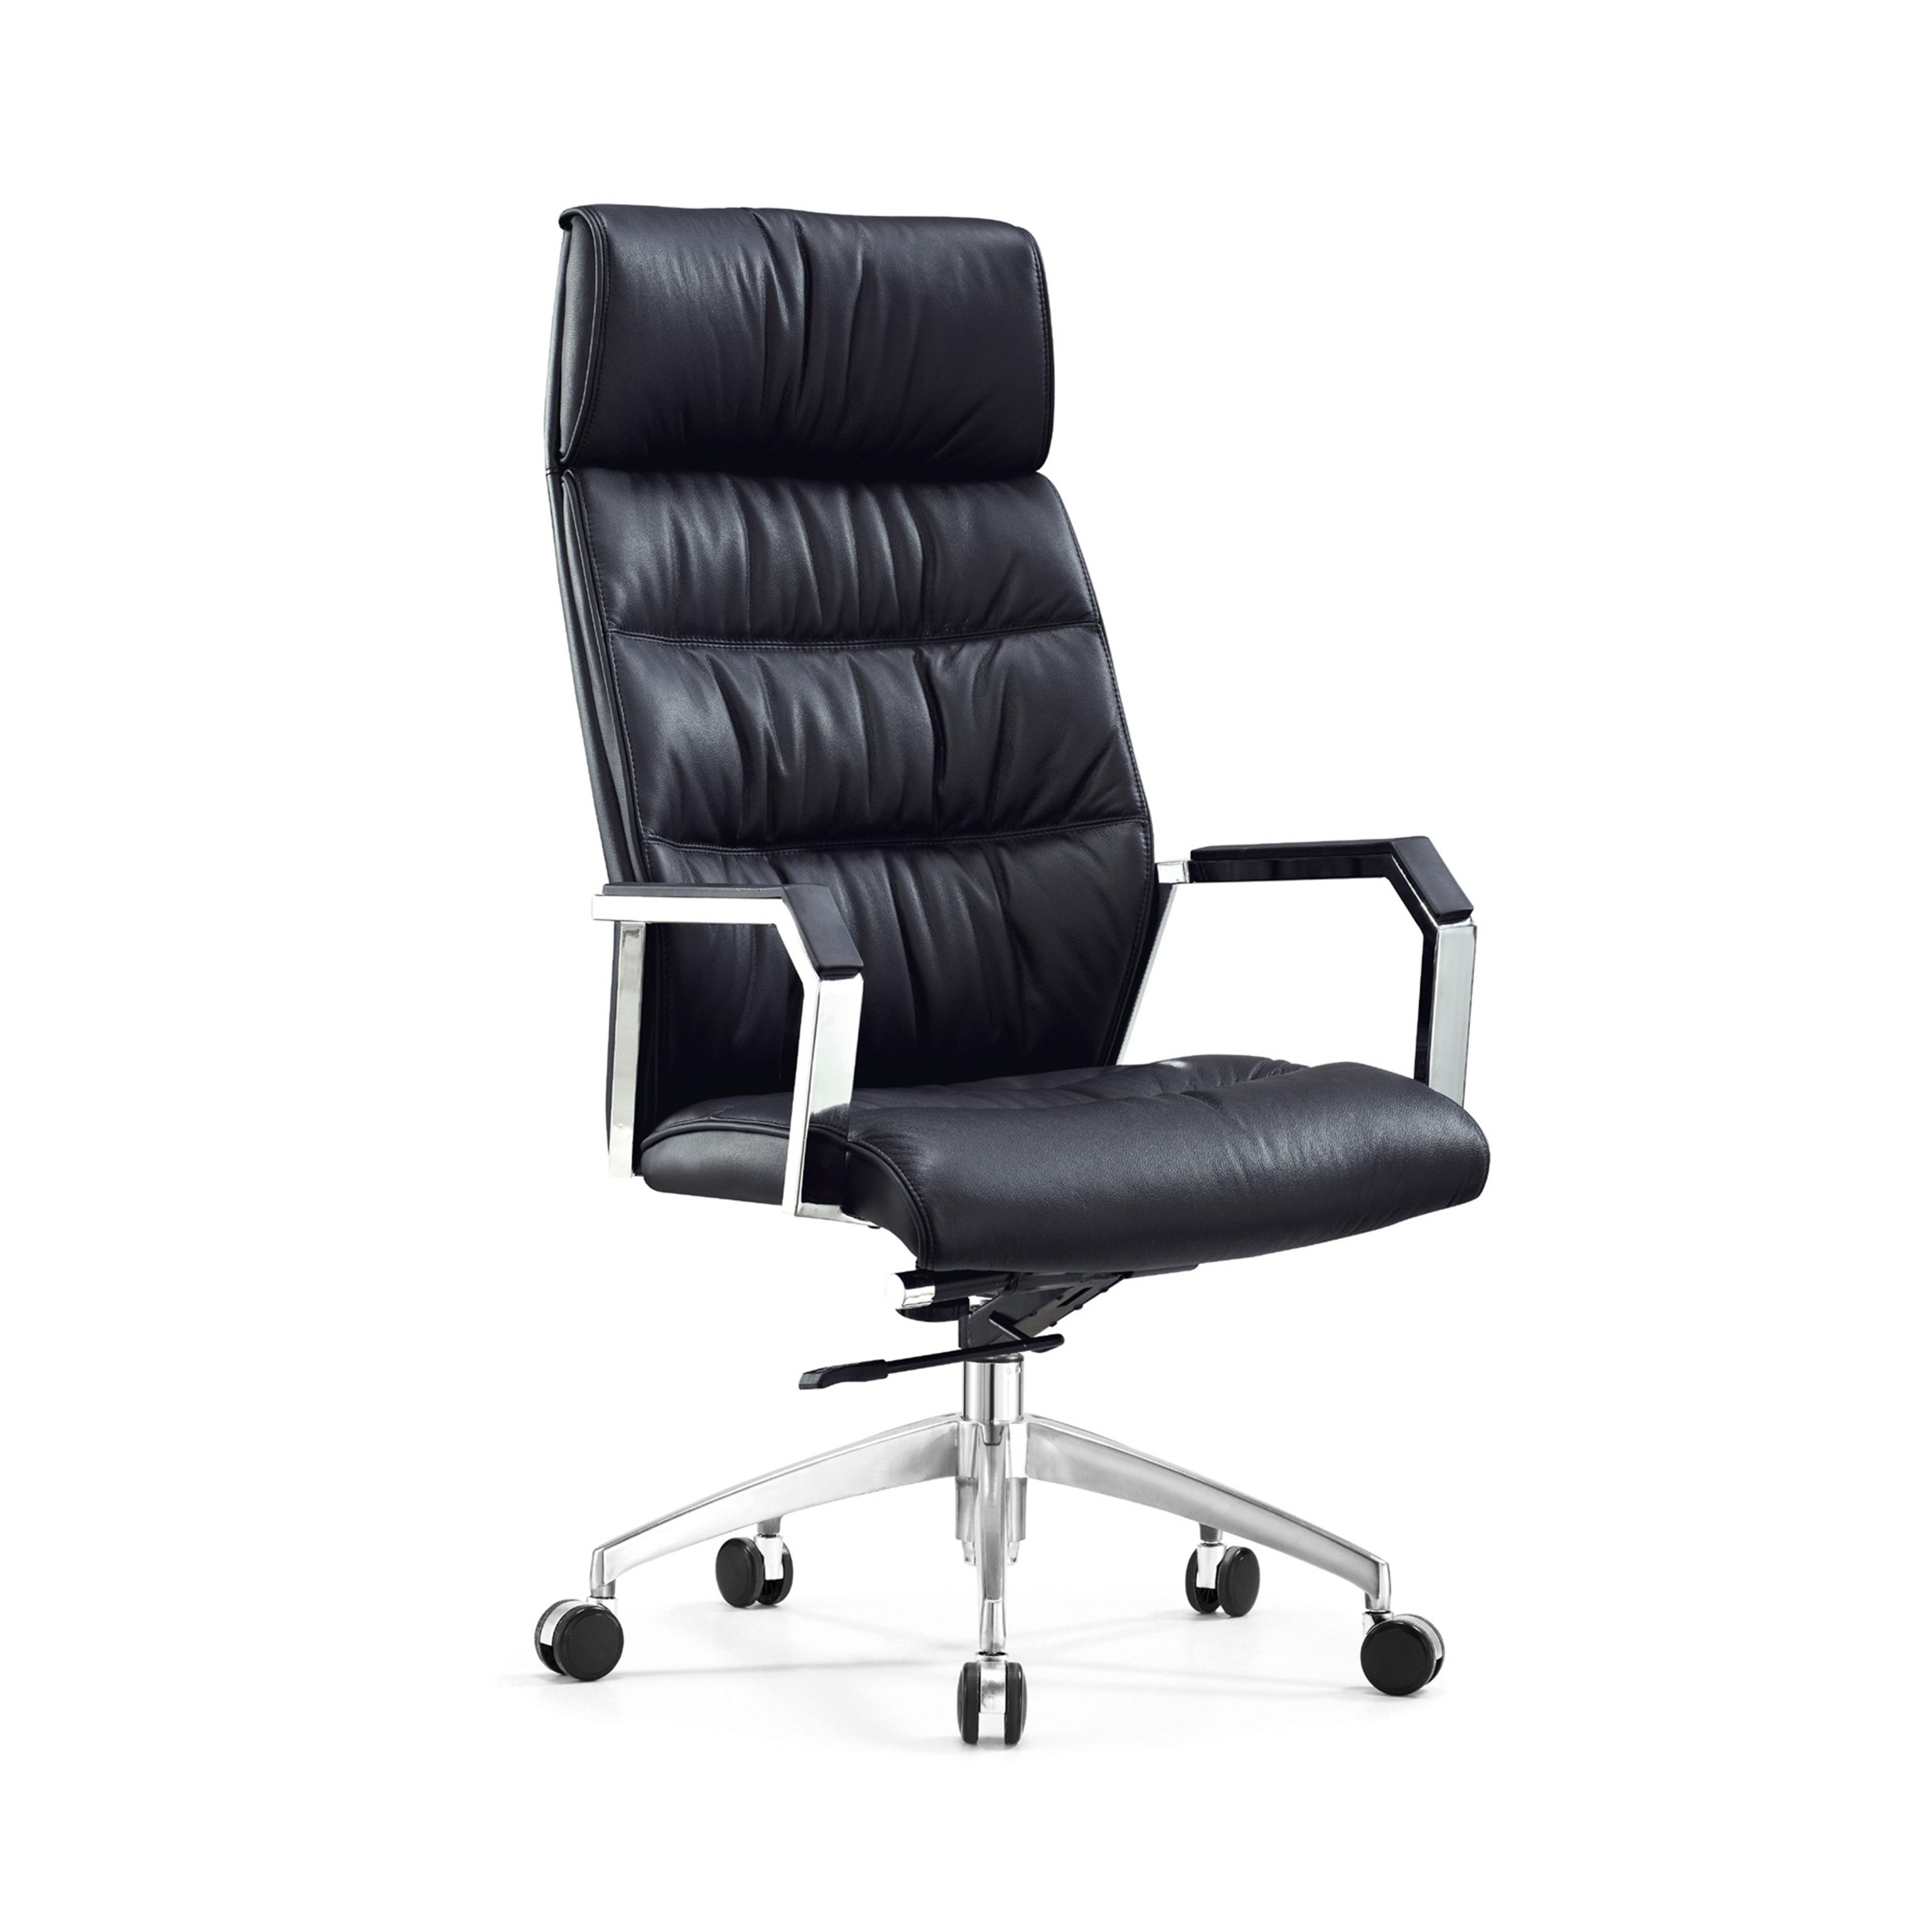 High And Low Back Chair Modern Office Chair Specific Use PU Leather Office Chair